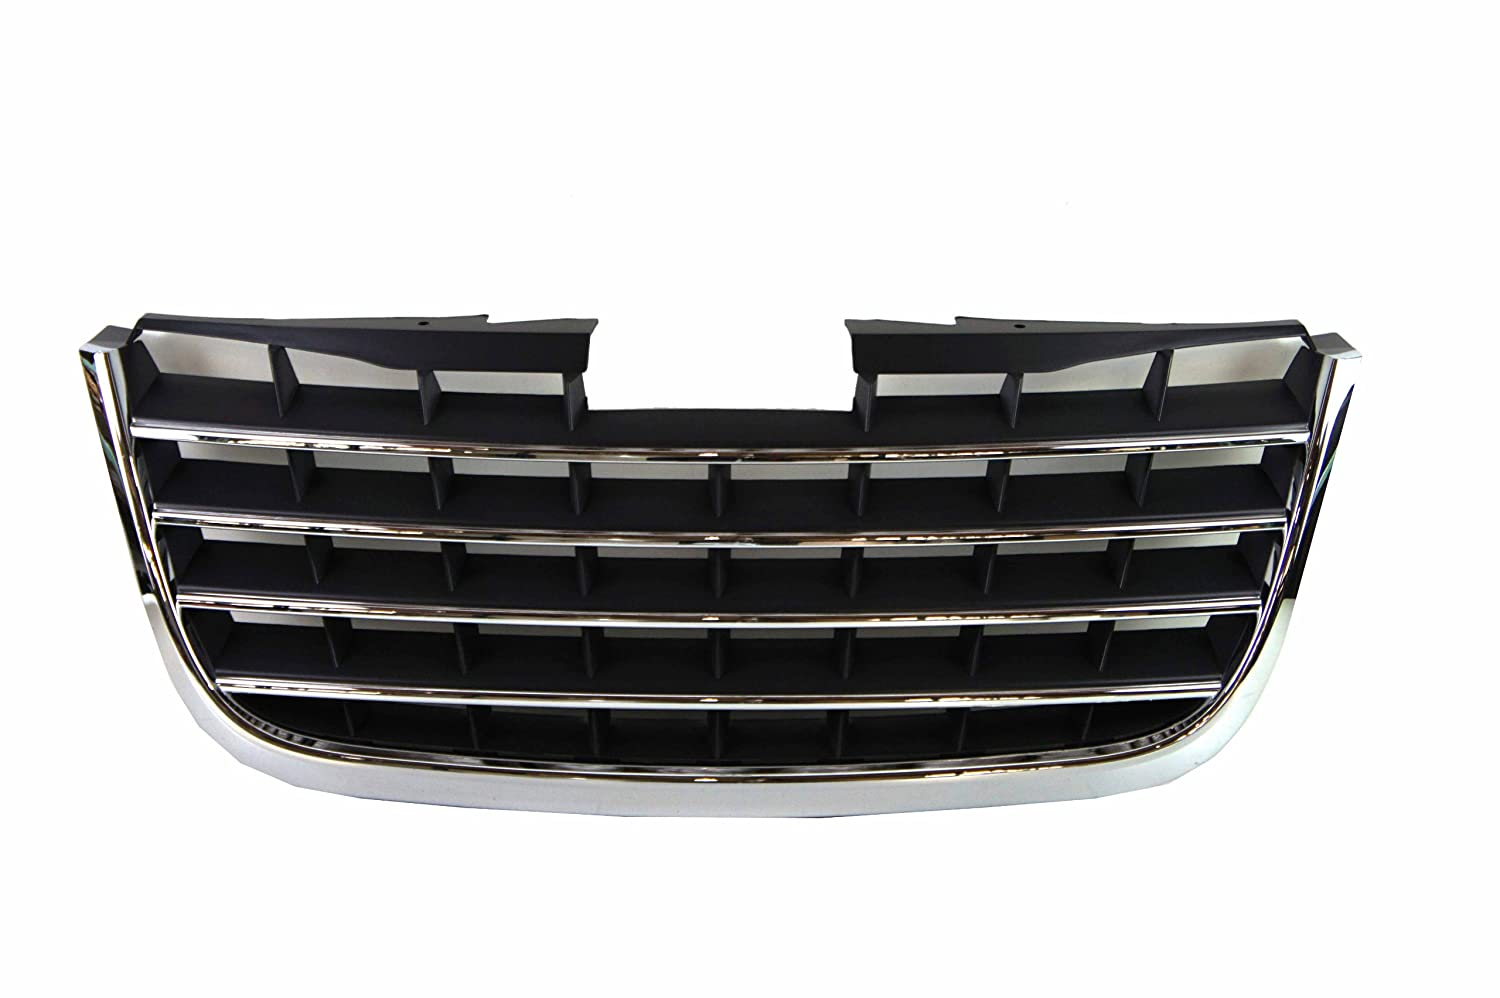 Genuine Chrysler Parts 5113228AA Grille Assembly